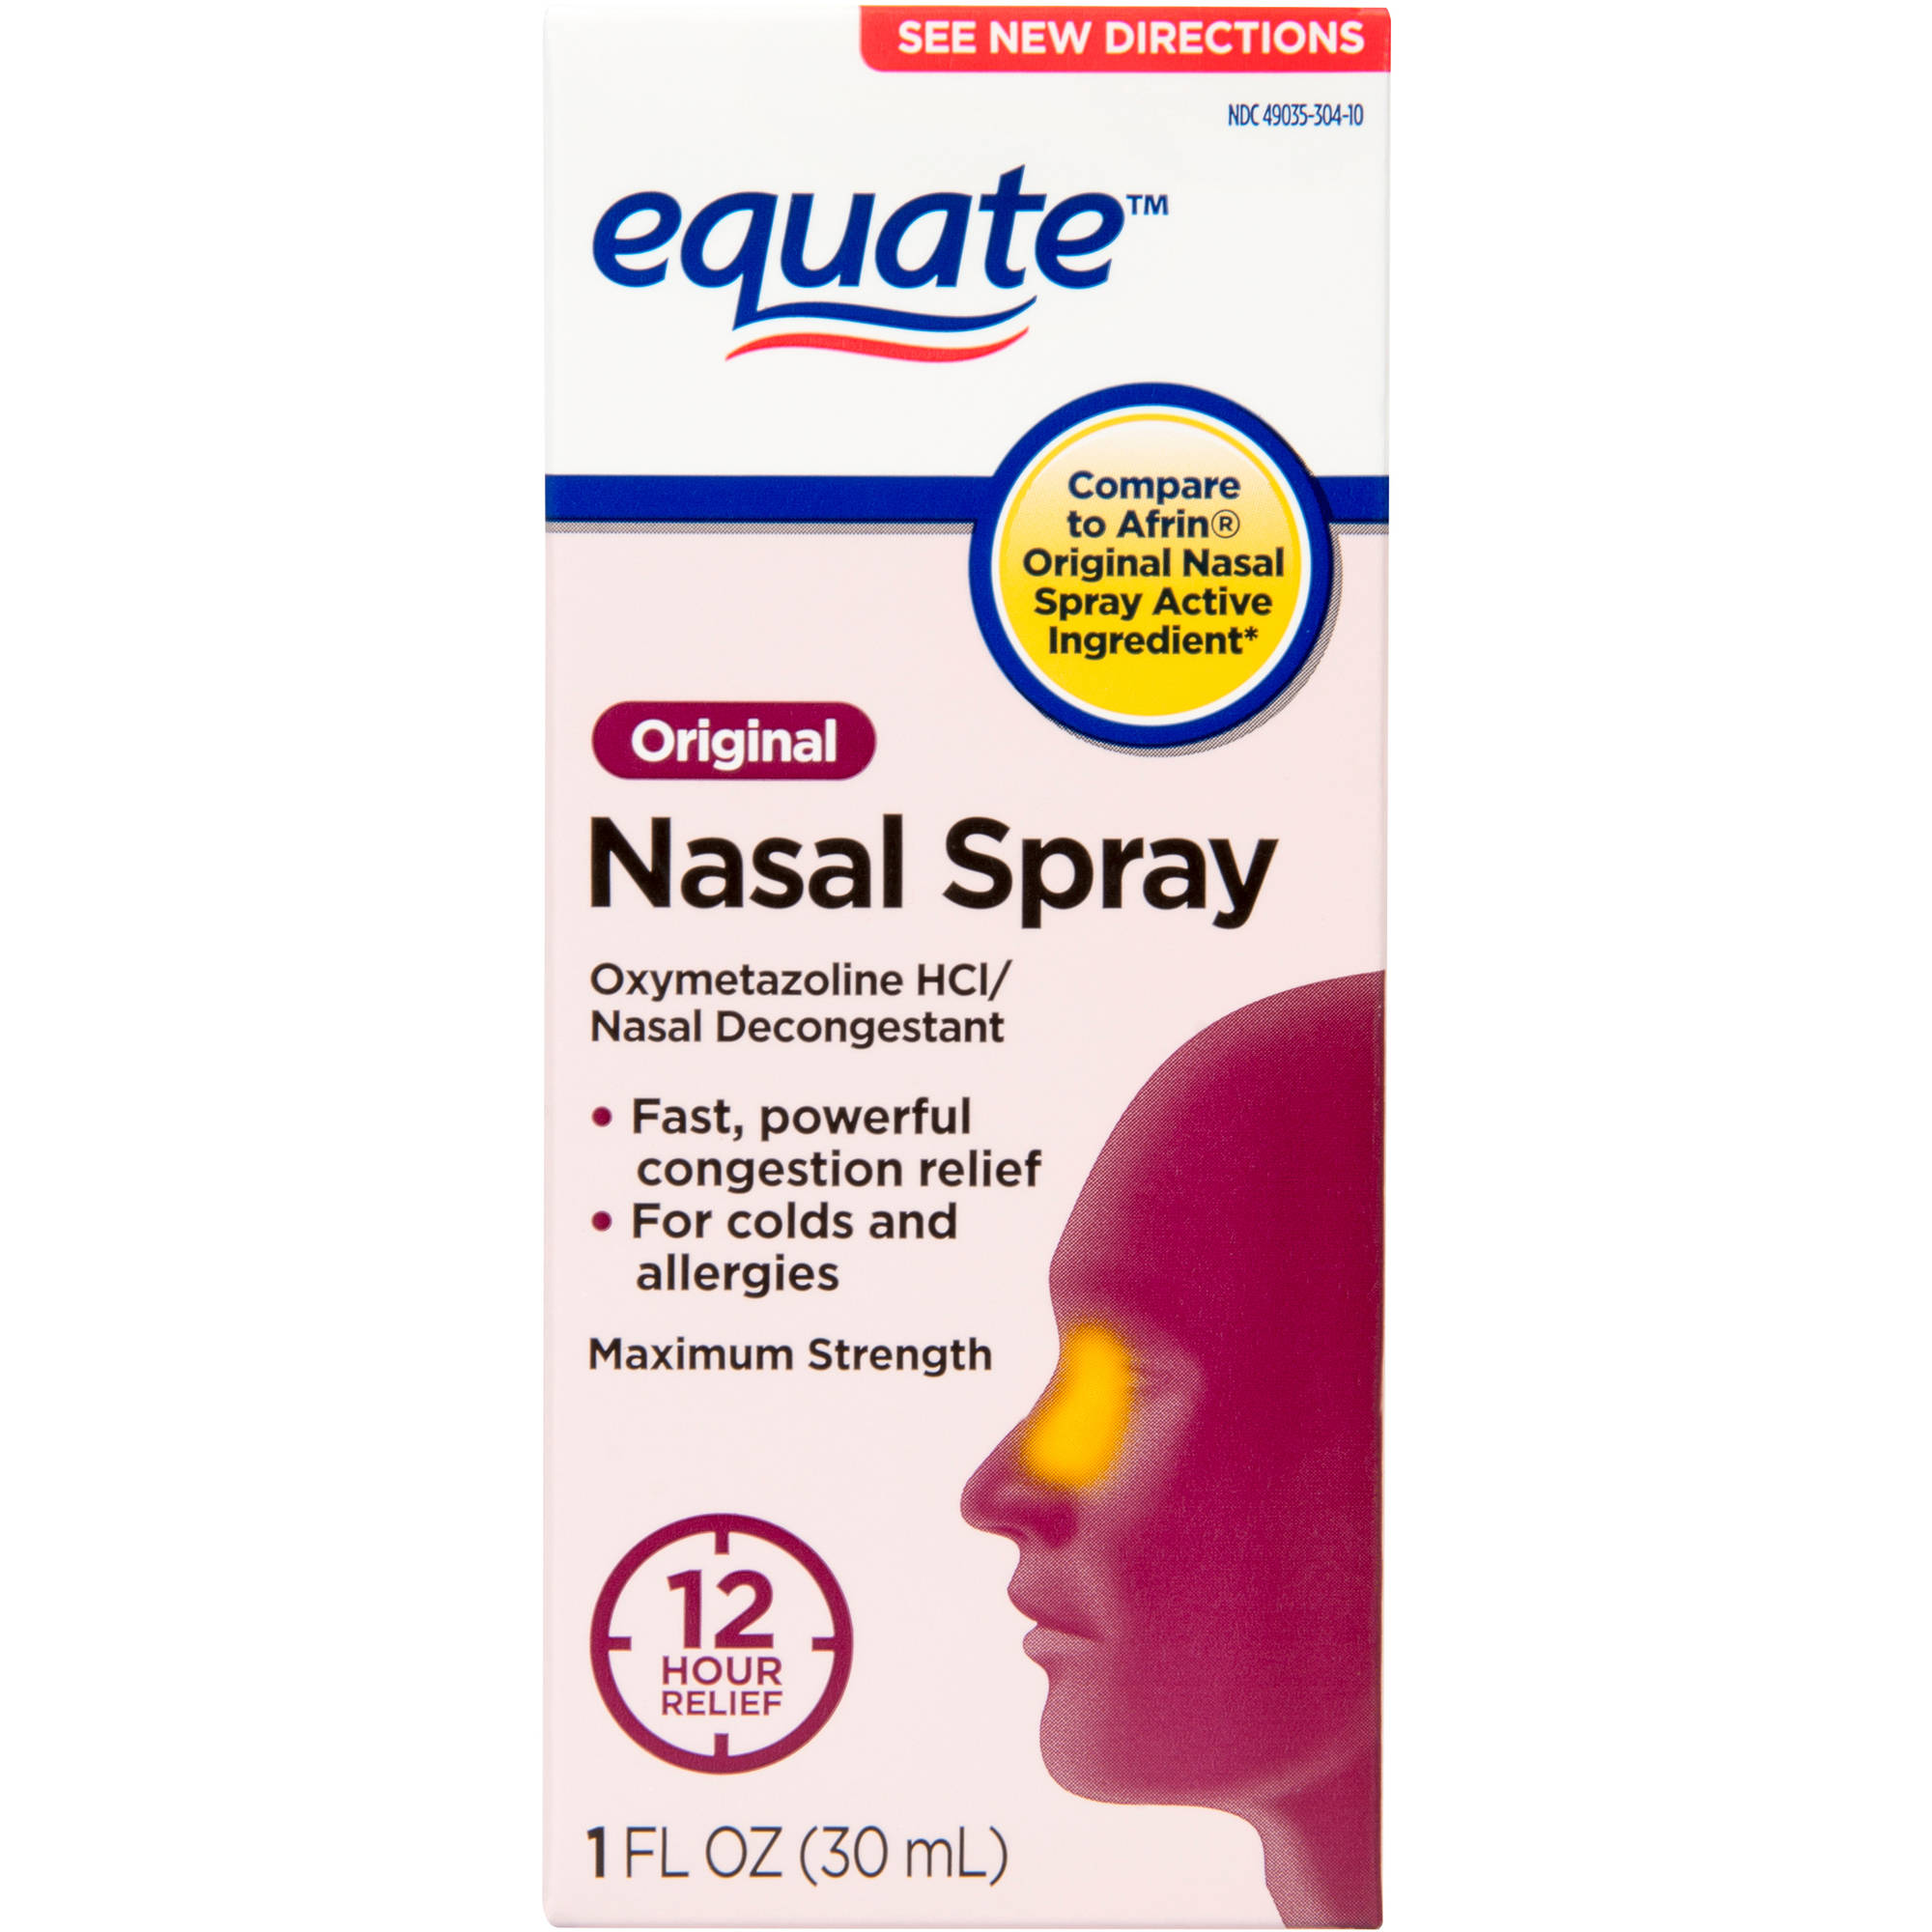 Equate: Oxymetazoline Hydrochloride 0.05% Nasal Decongestant/Original/12 Hour Nasal Spray, 1 oz